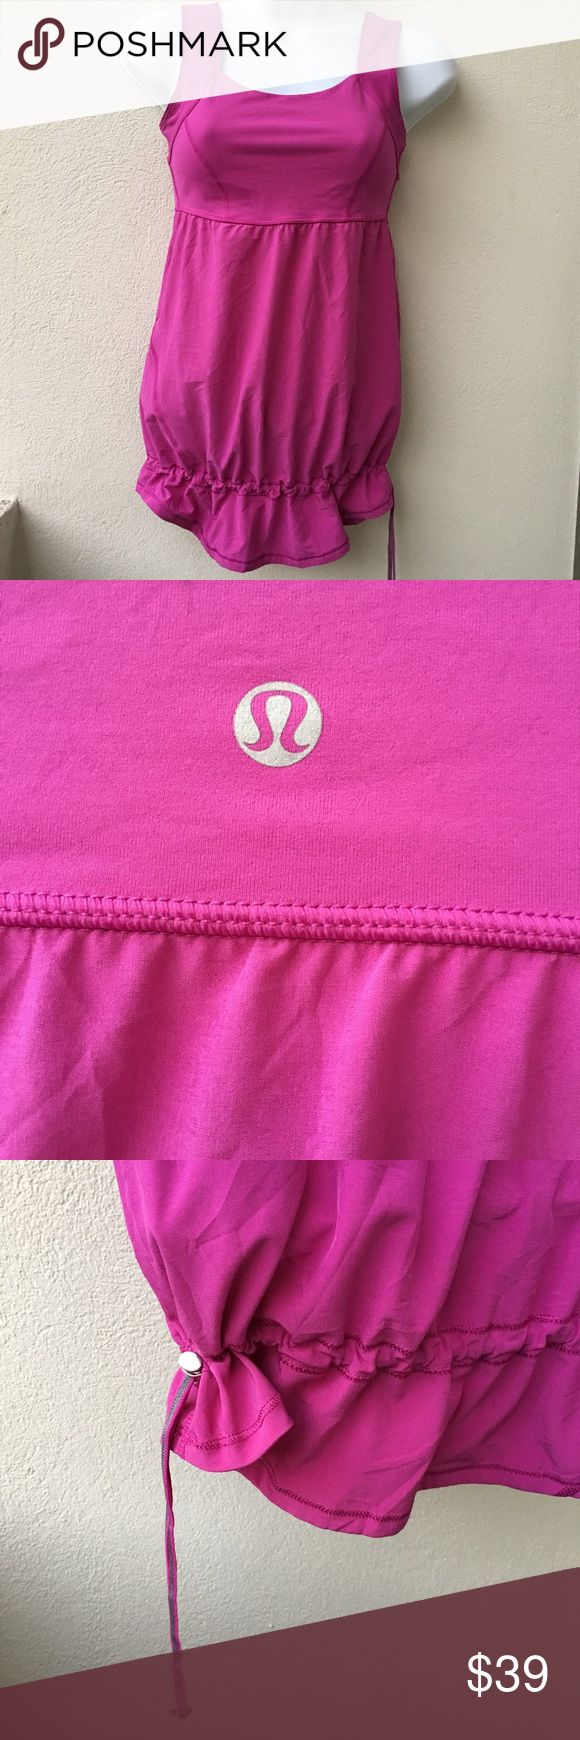 Lululemon Magenta Top size 4 Preowned lightly worn like new Lululemon Magenta Top size 4. No builtin bra. Has drawstring at the bottom to wear shirt as desired. Please look at pictures for better reference. Happy shopping!! T1 lululemon athletica Tops Tank Tops